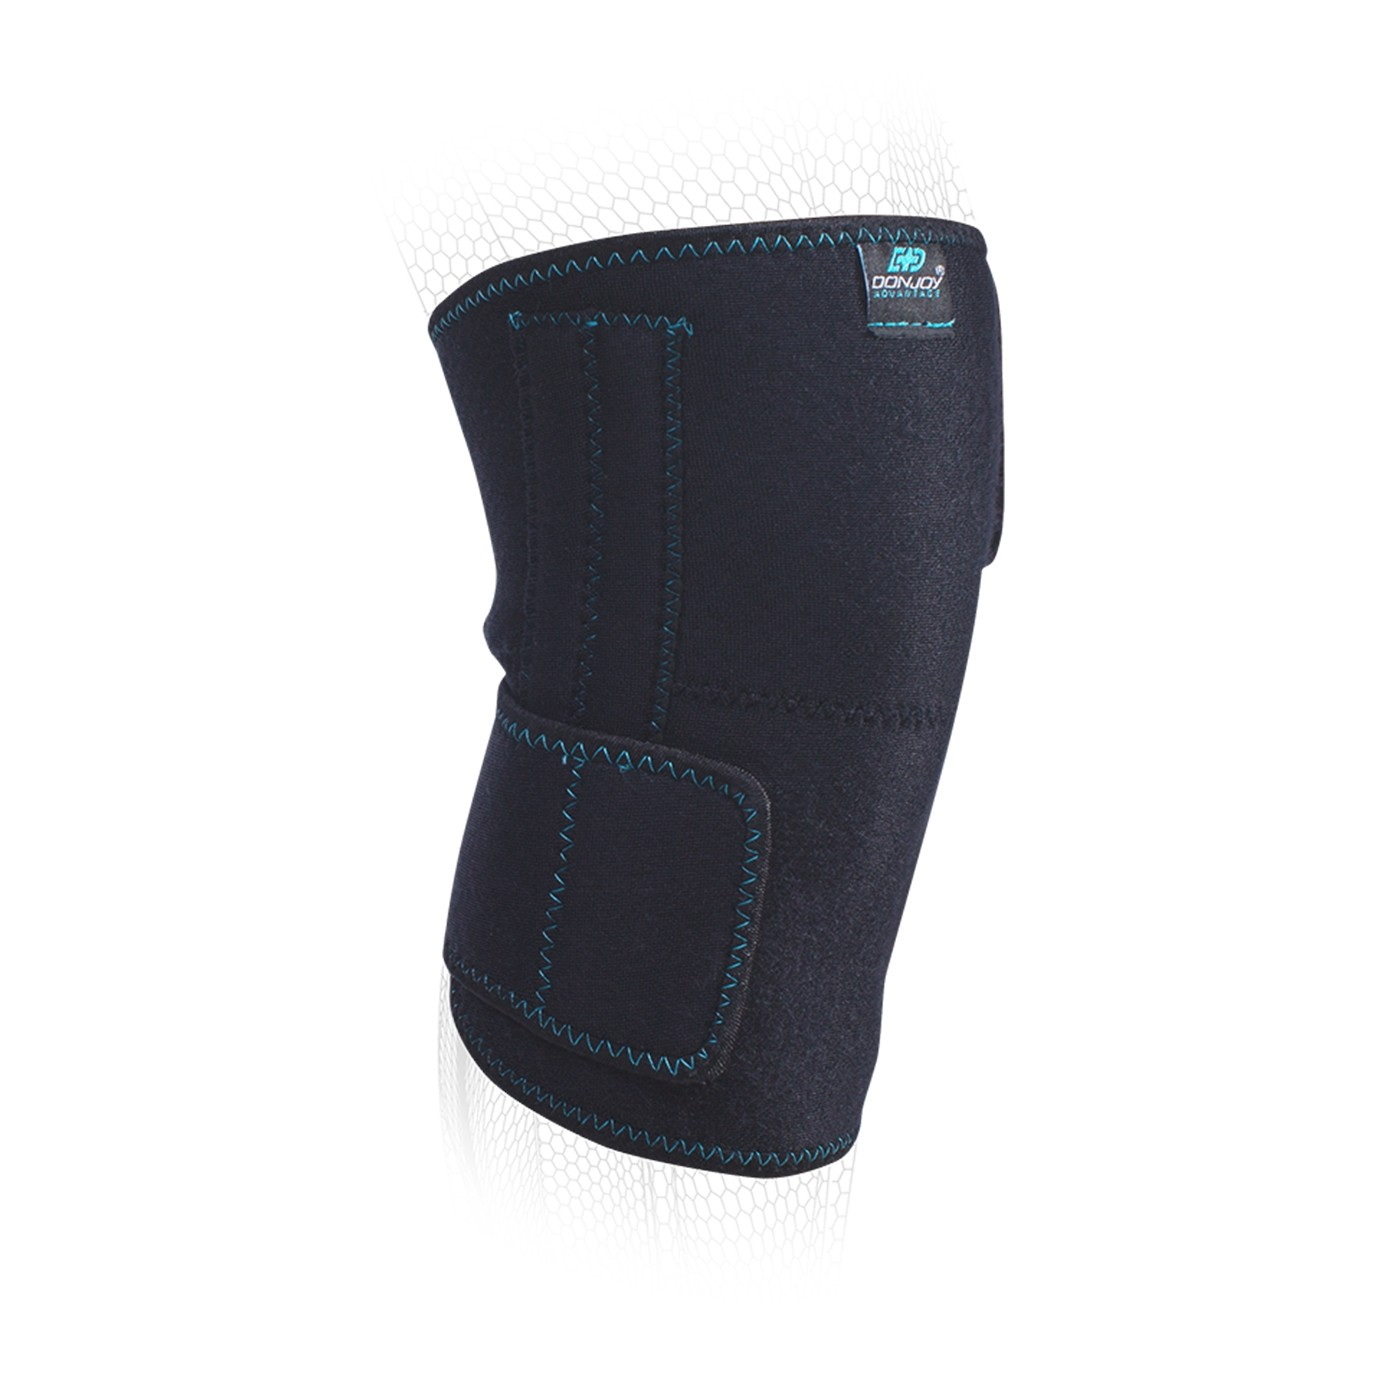 DonJoy Advantage Knee Wrap With Stays